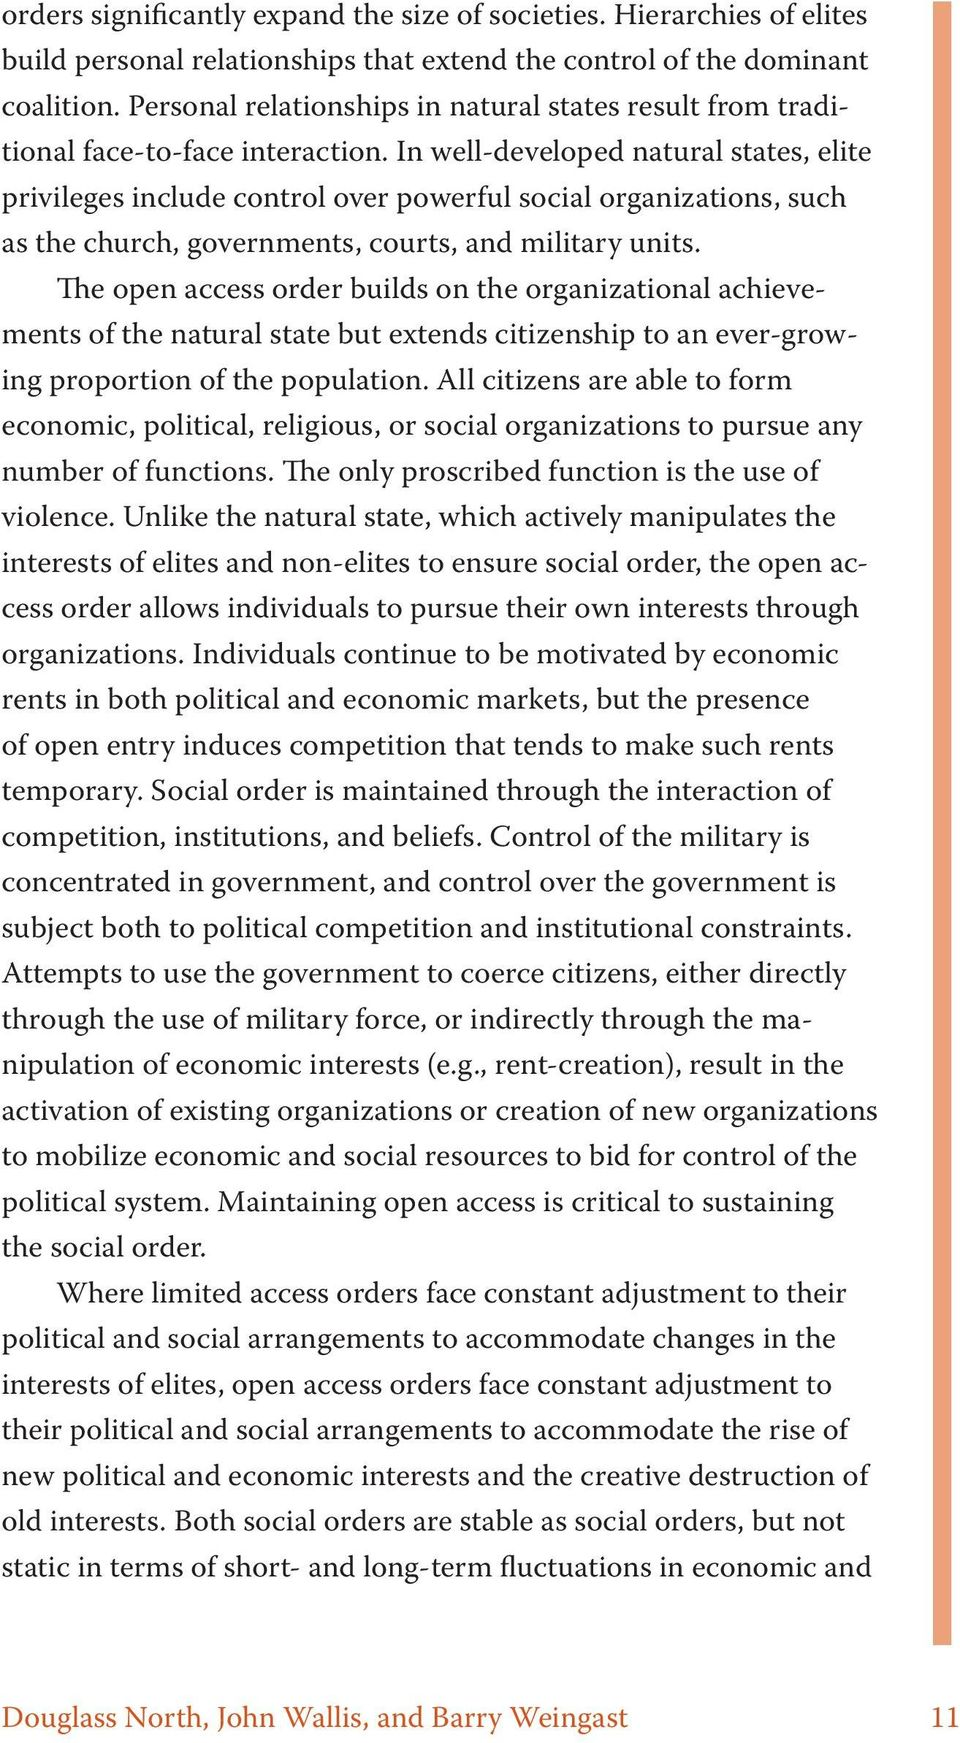 In well-developed natural states, elite privileges include control over powerful social organizations, such as the church, governments, courts, and military units.